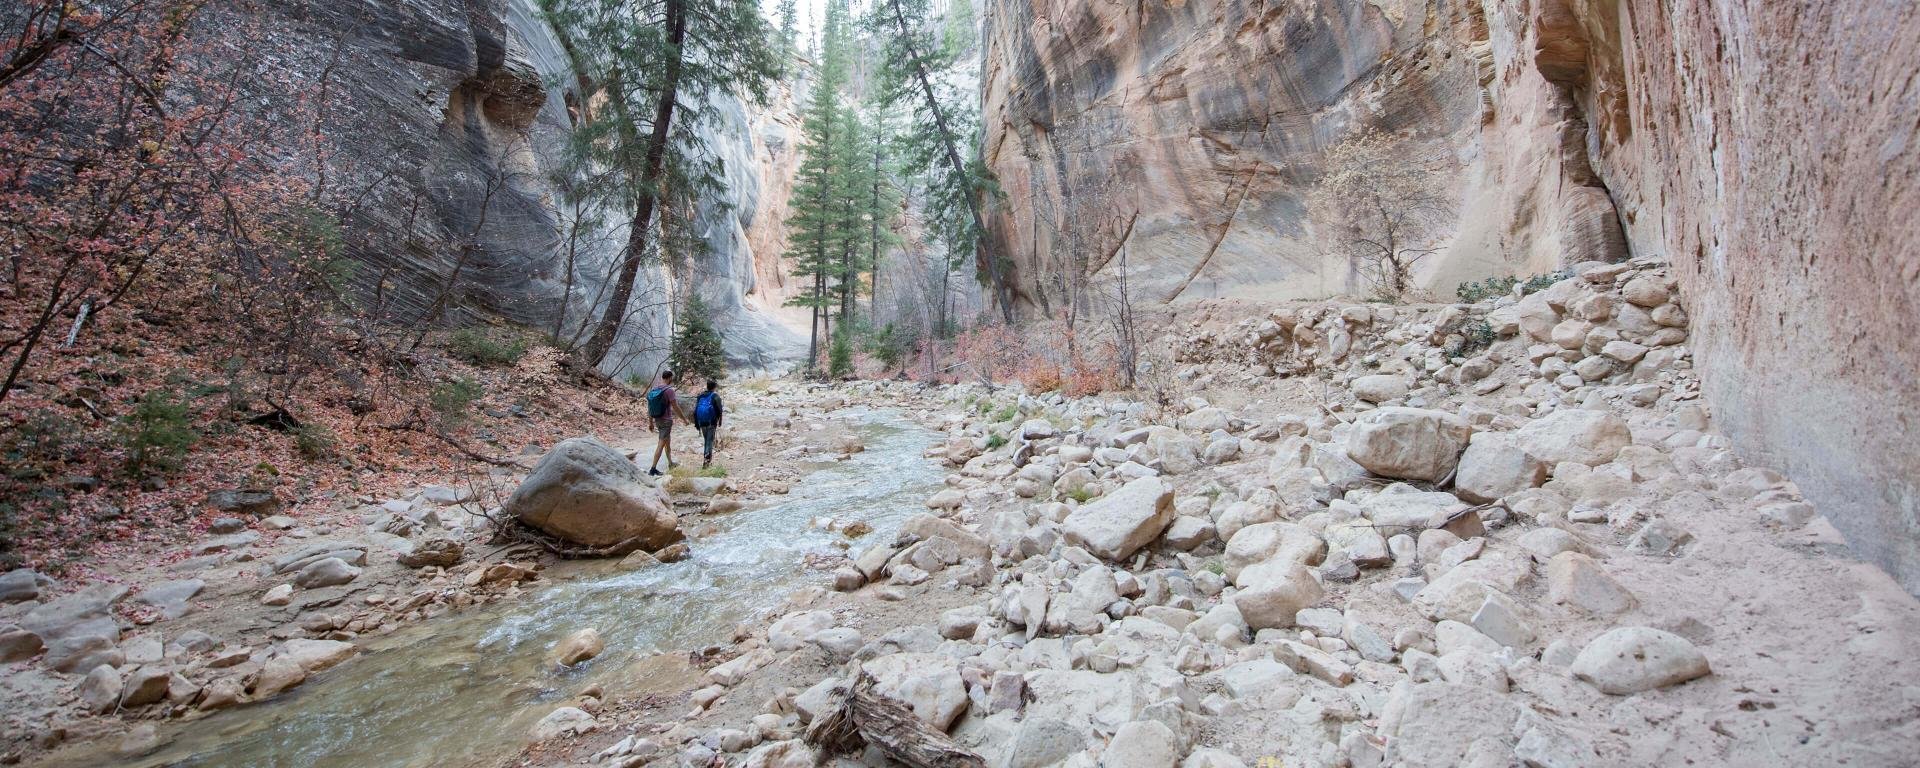 The Zion Narrows Trail is protected forever